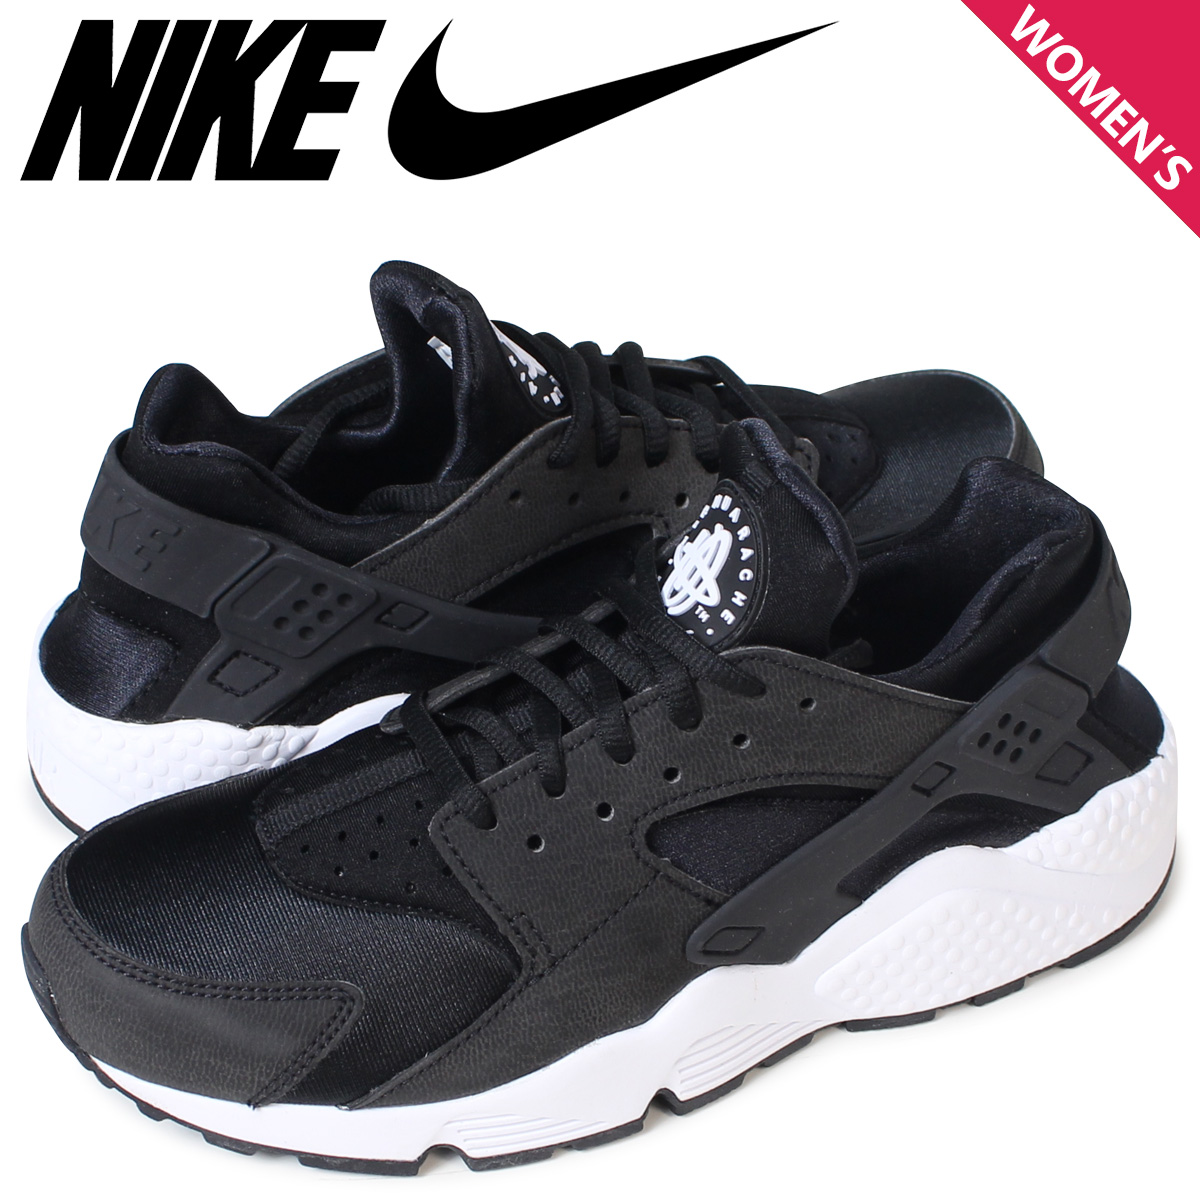 Sugar Online Shop |  Global WMNS Market: Nike NIKE エアハラチレディーススニーカー WMNS Global AIR HUARACHE RUN 634,835-006 shoes black [load planned Shinnyu load in reservation product 9/16 containing] f432c2